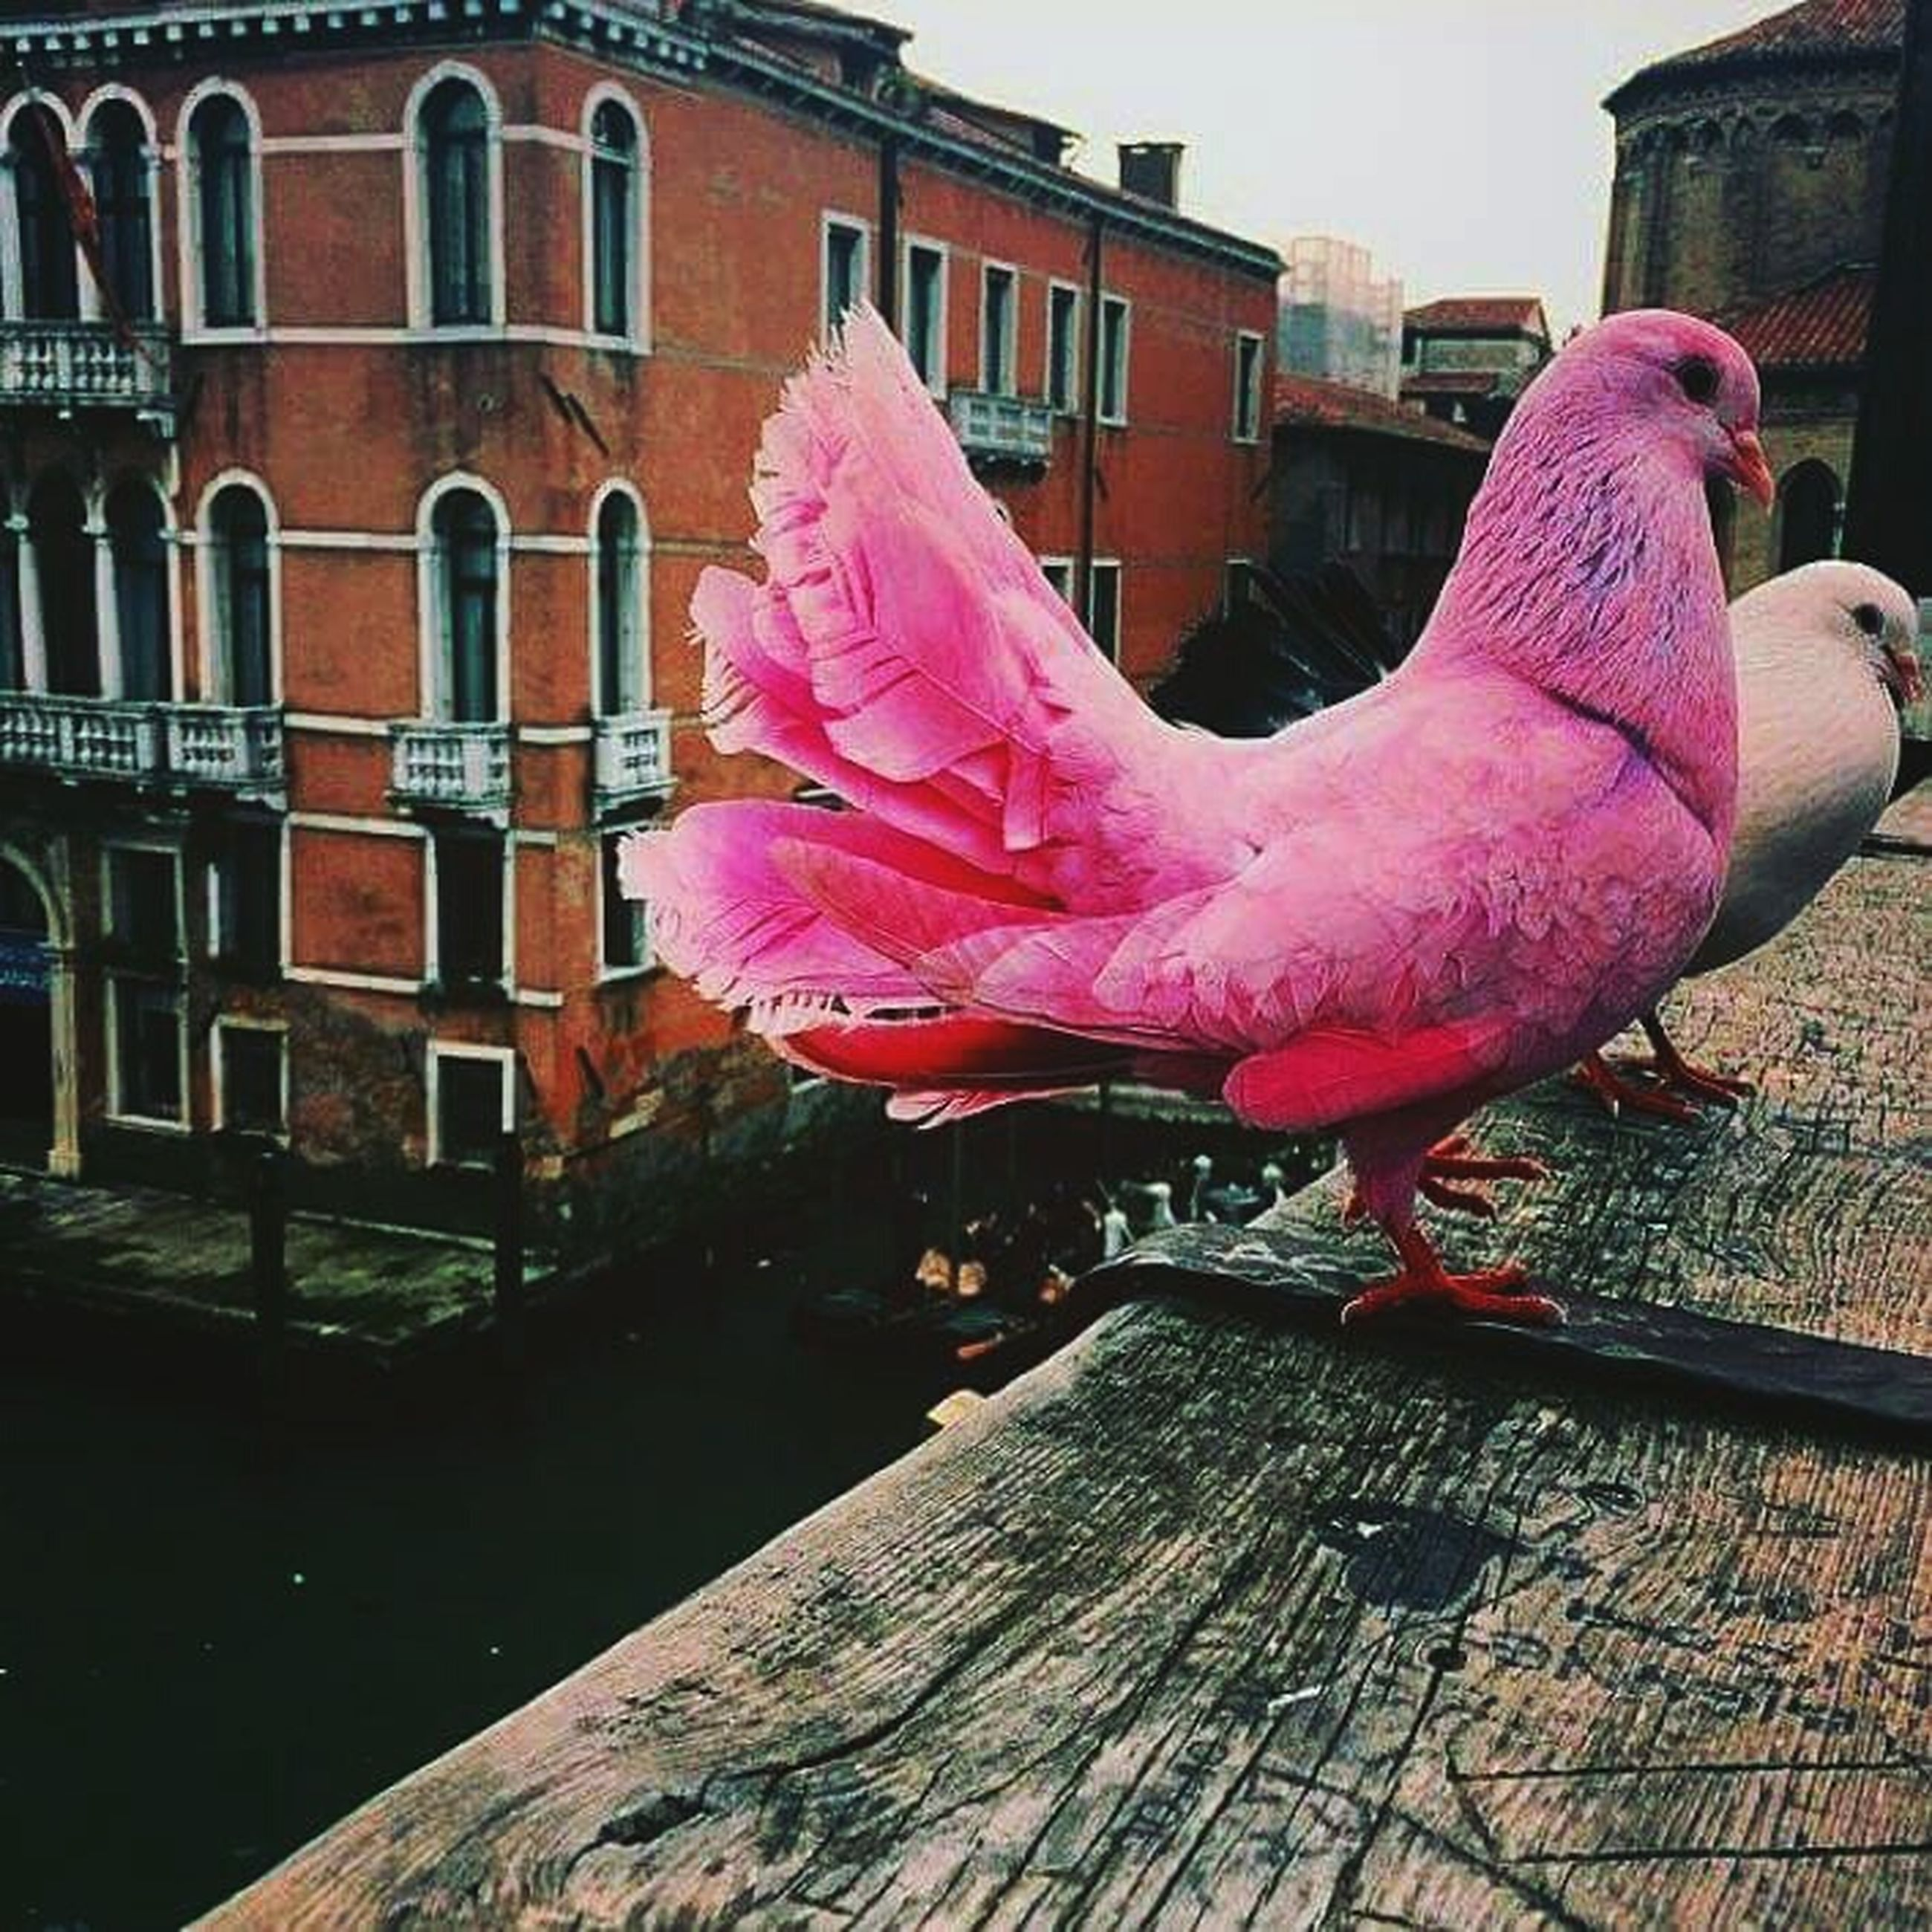 building exterior, built structure, architecture, pink color, outdoors, day, house, sunlight, city, water, building, no people, street, sidewalk, railing, residential structure, flower, animal themes, side view, bird